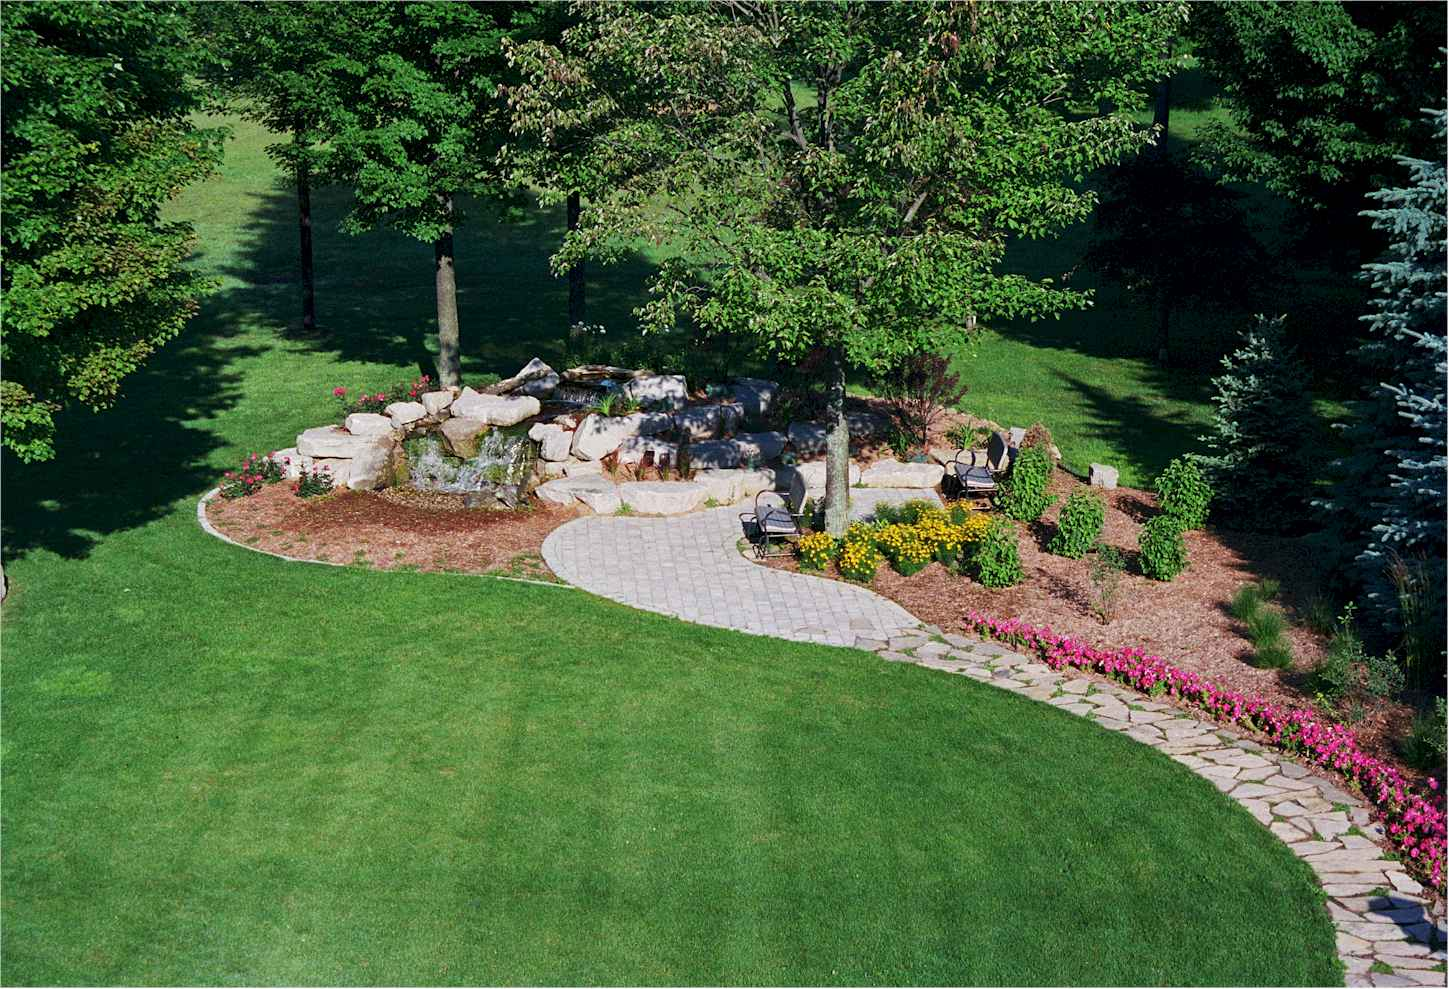 5 landscaping ideas to wow the neighbors for House landscaping ideas